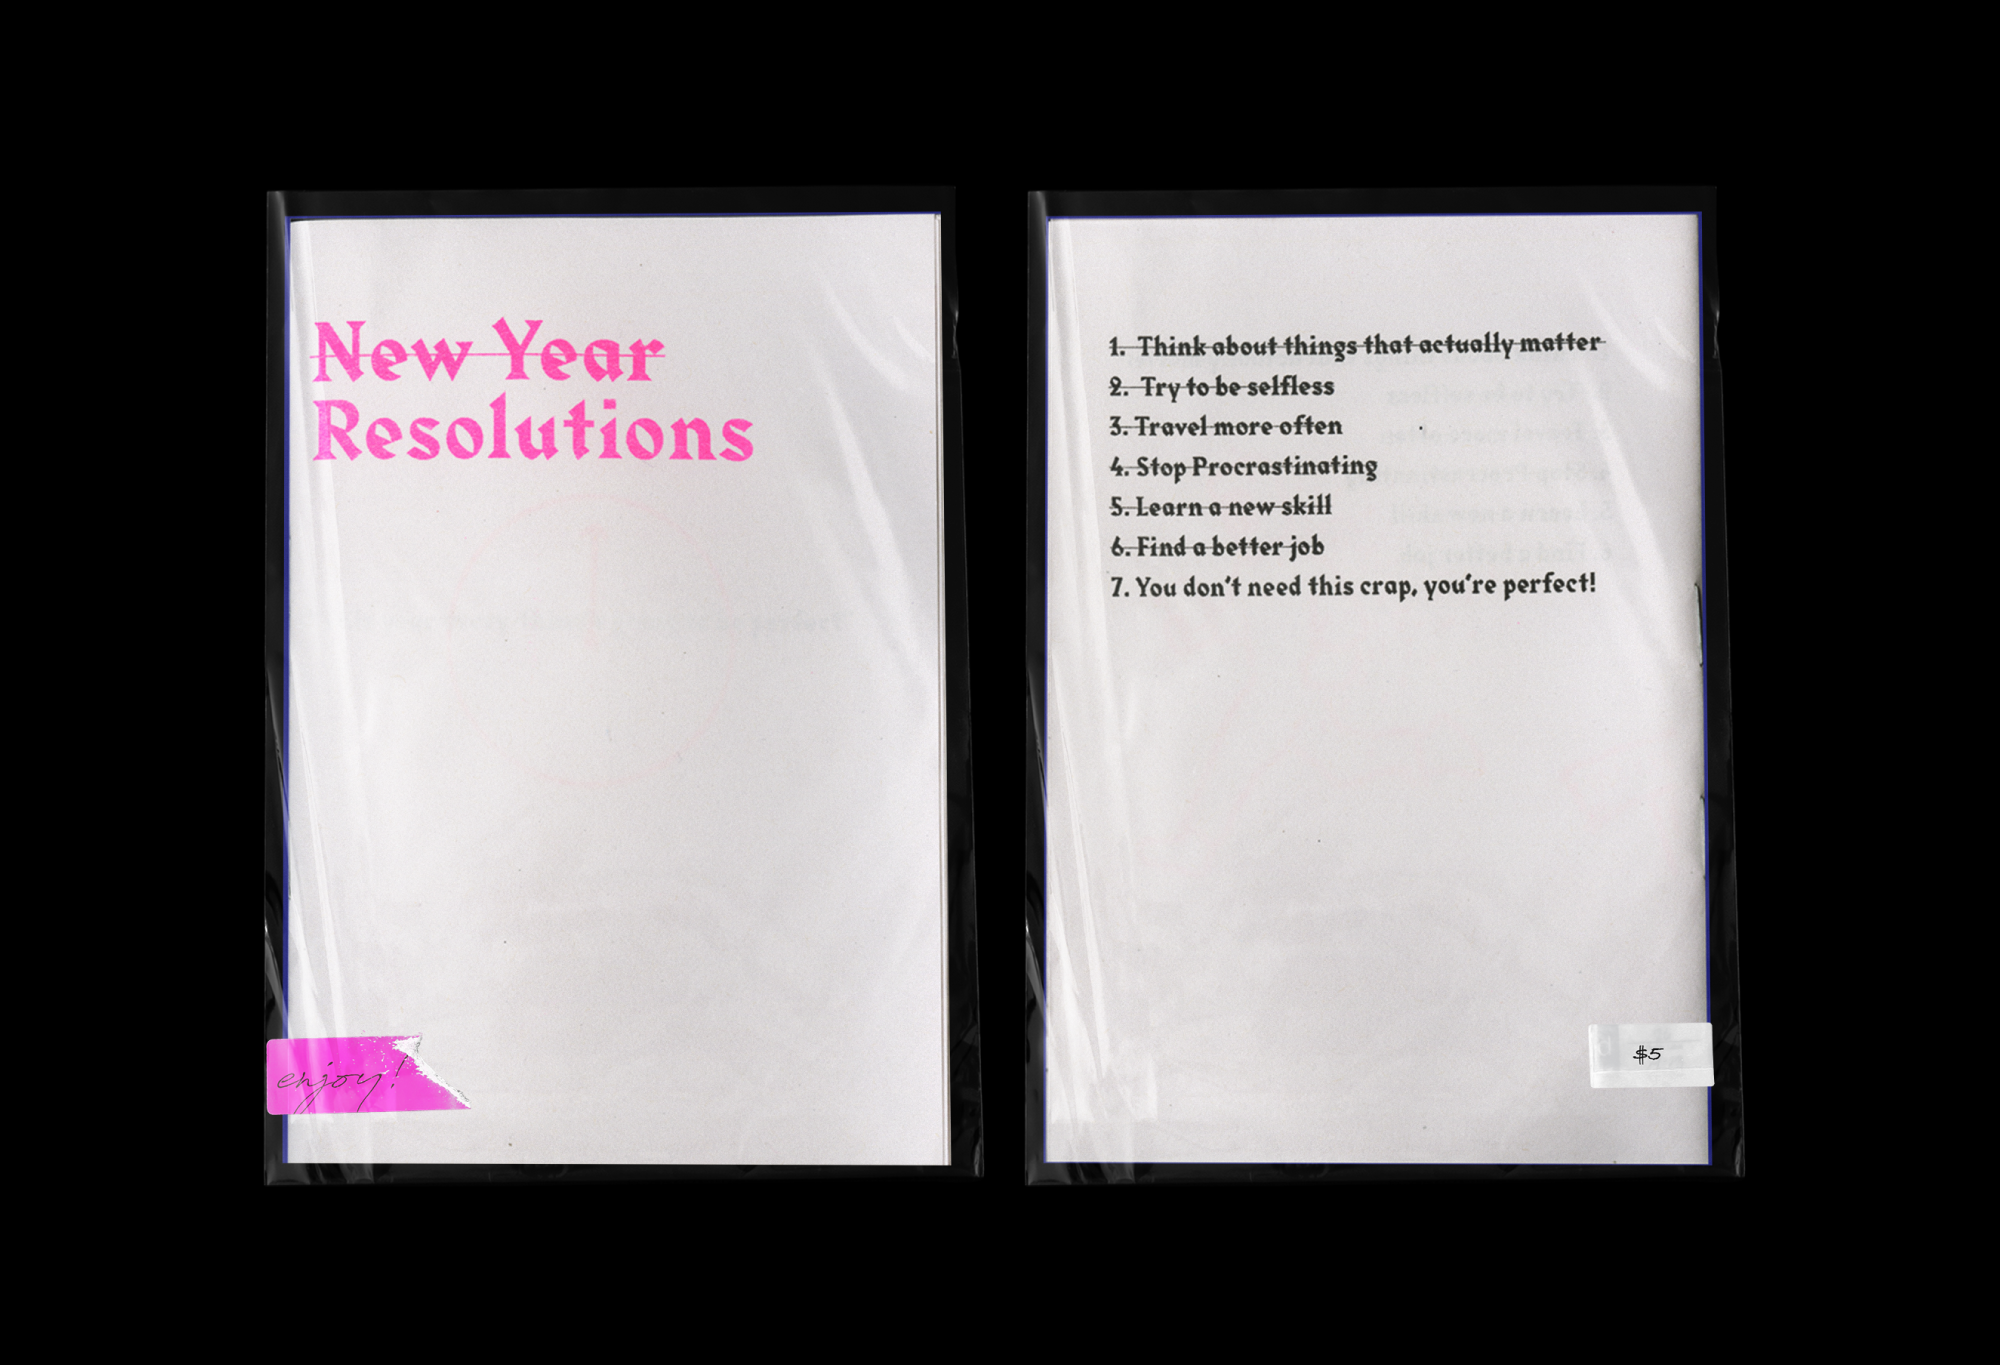 Resolutions Art A Satirical Take On New Year S Resolutions